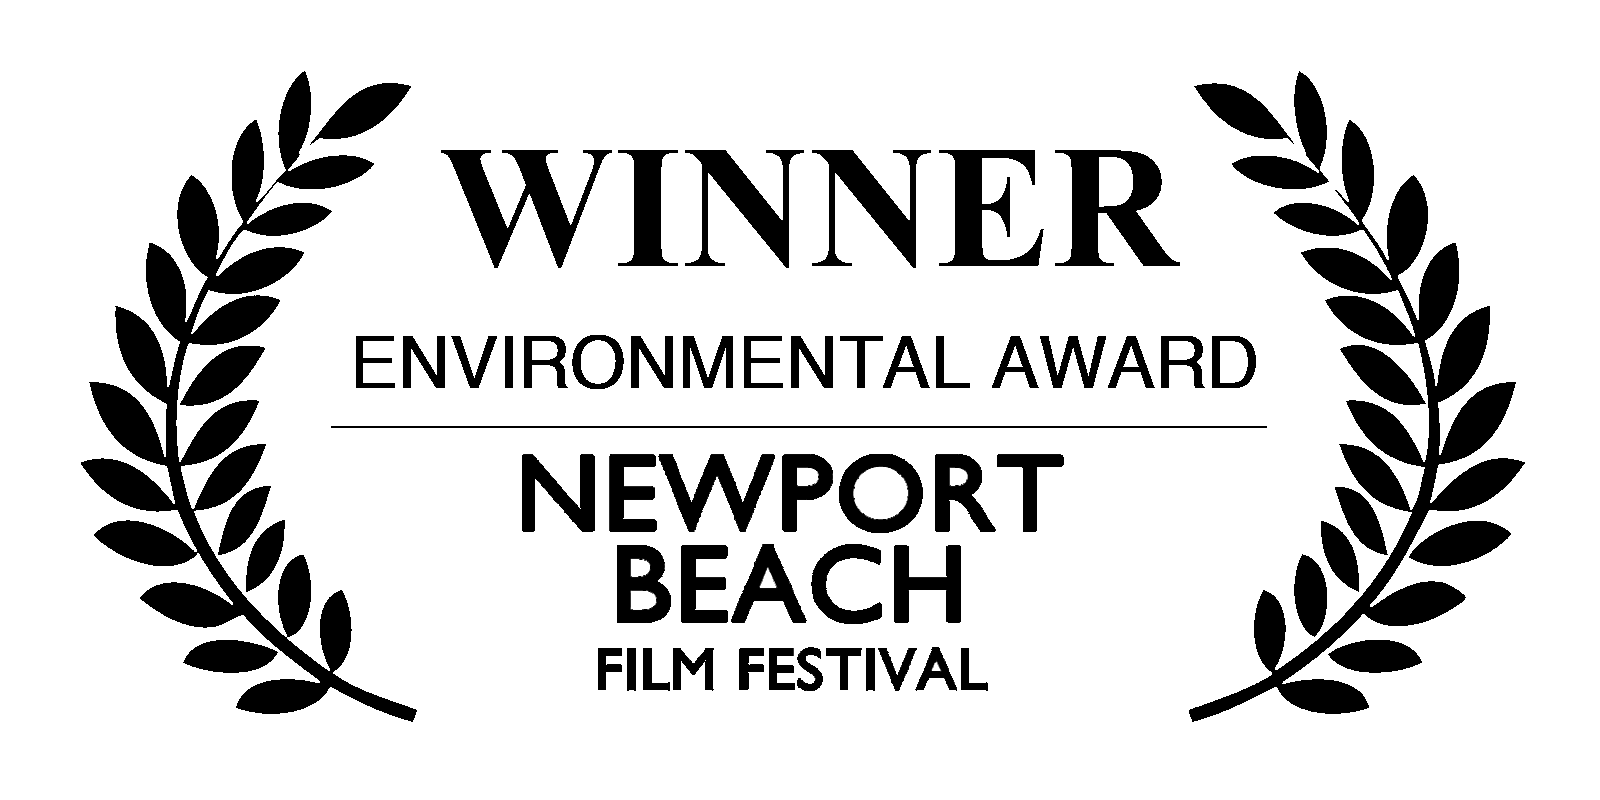 NEWPORT-BEACH-FF-ENVIRONMENTAL-AWARD-Black.png